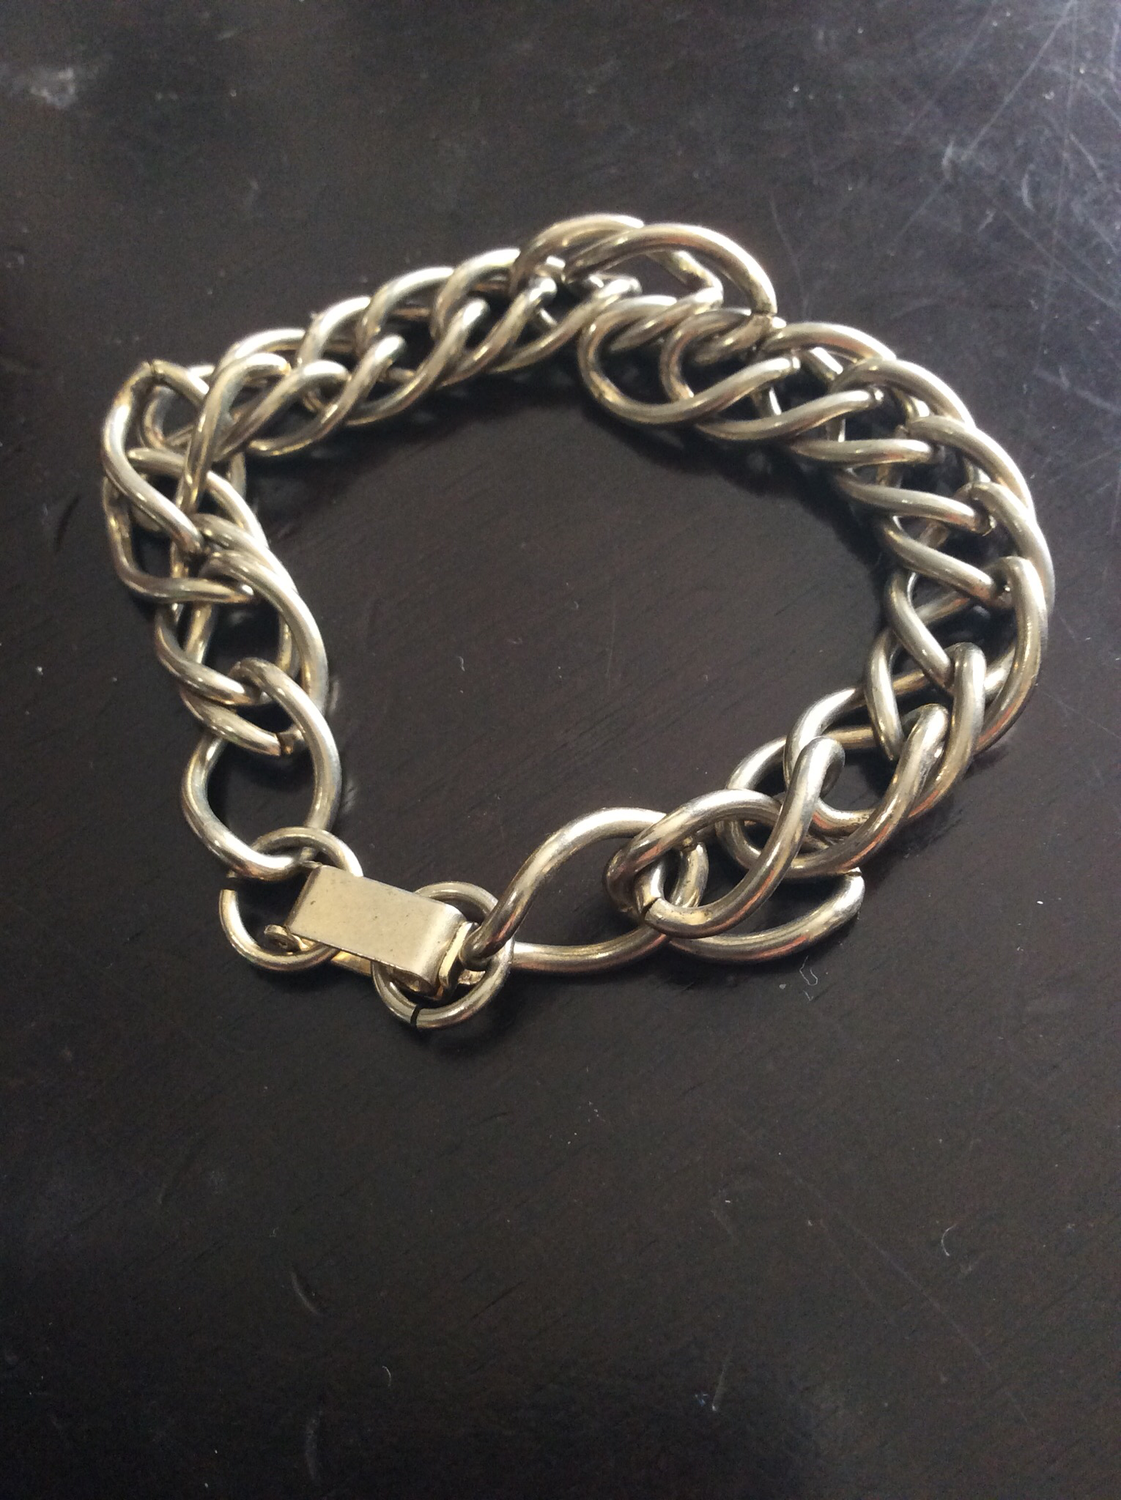 To charge enchanted tabernacles and spirit Talismans, place this bracelet with such in a box, bag, basket, etc